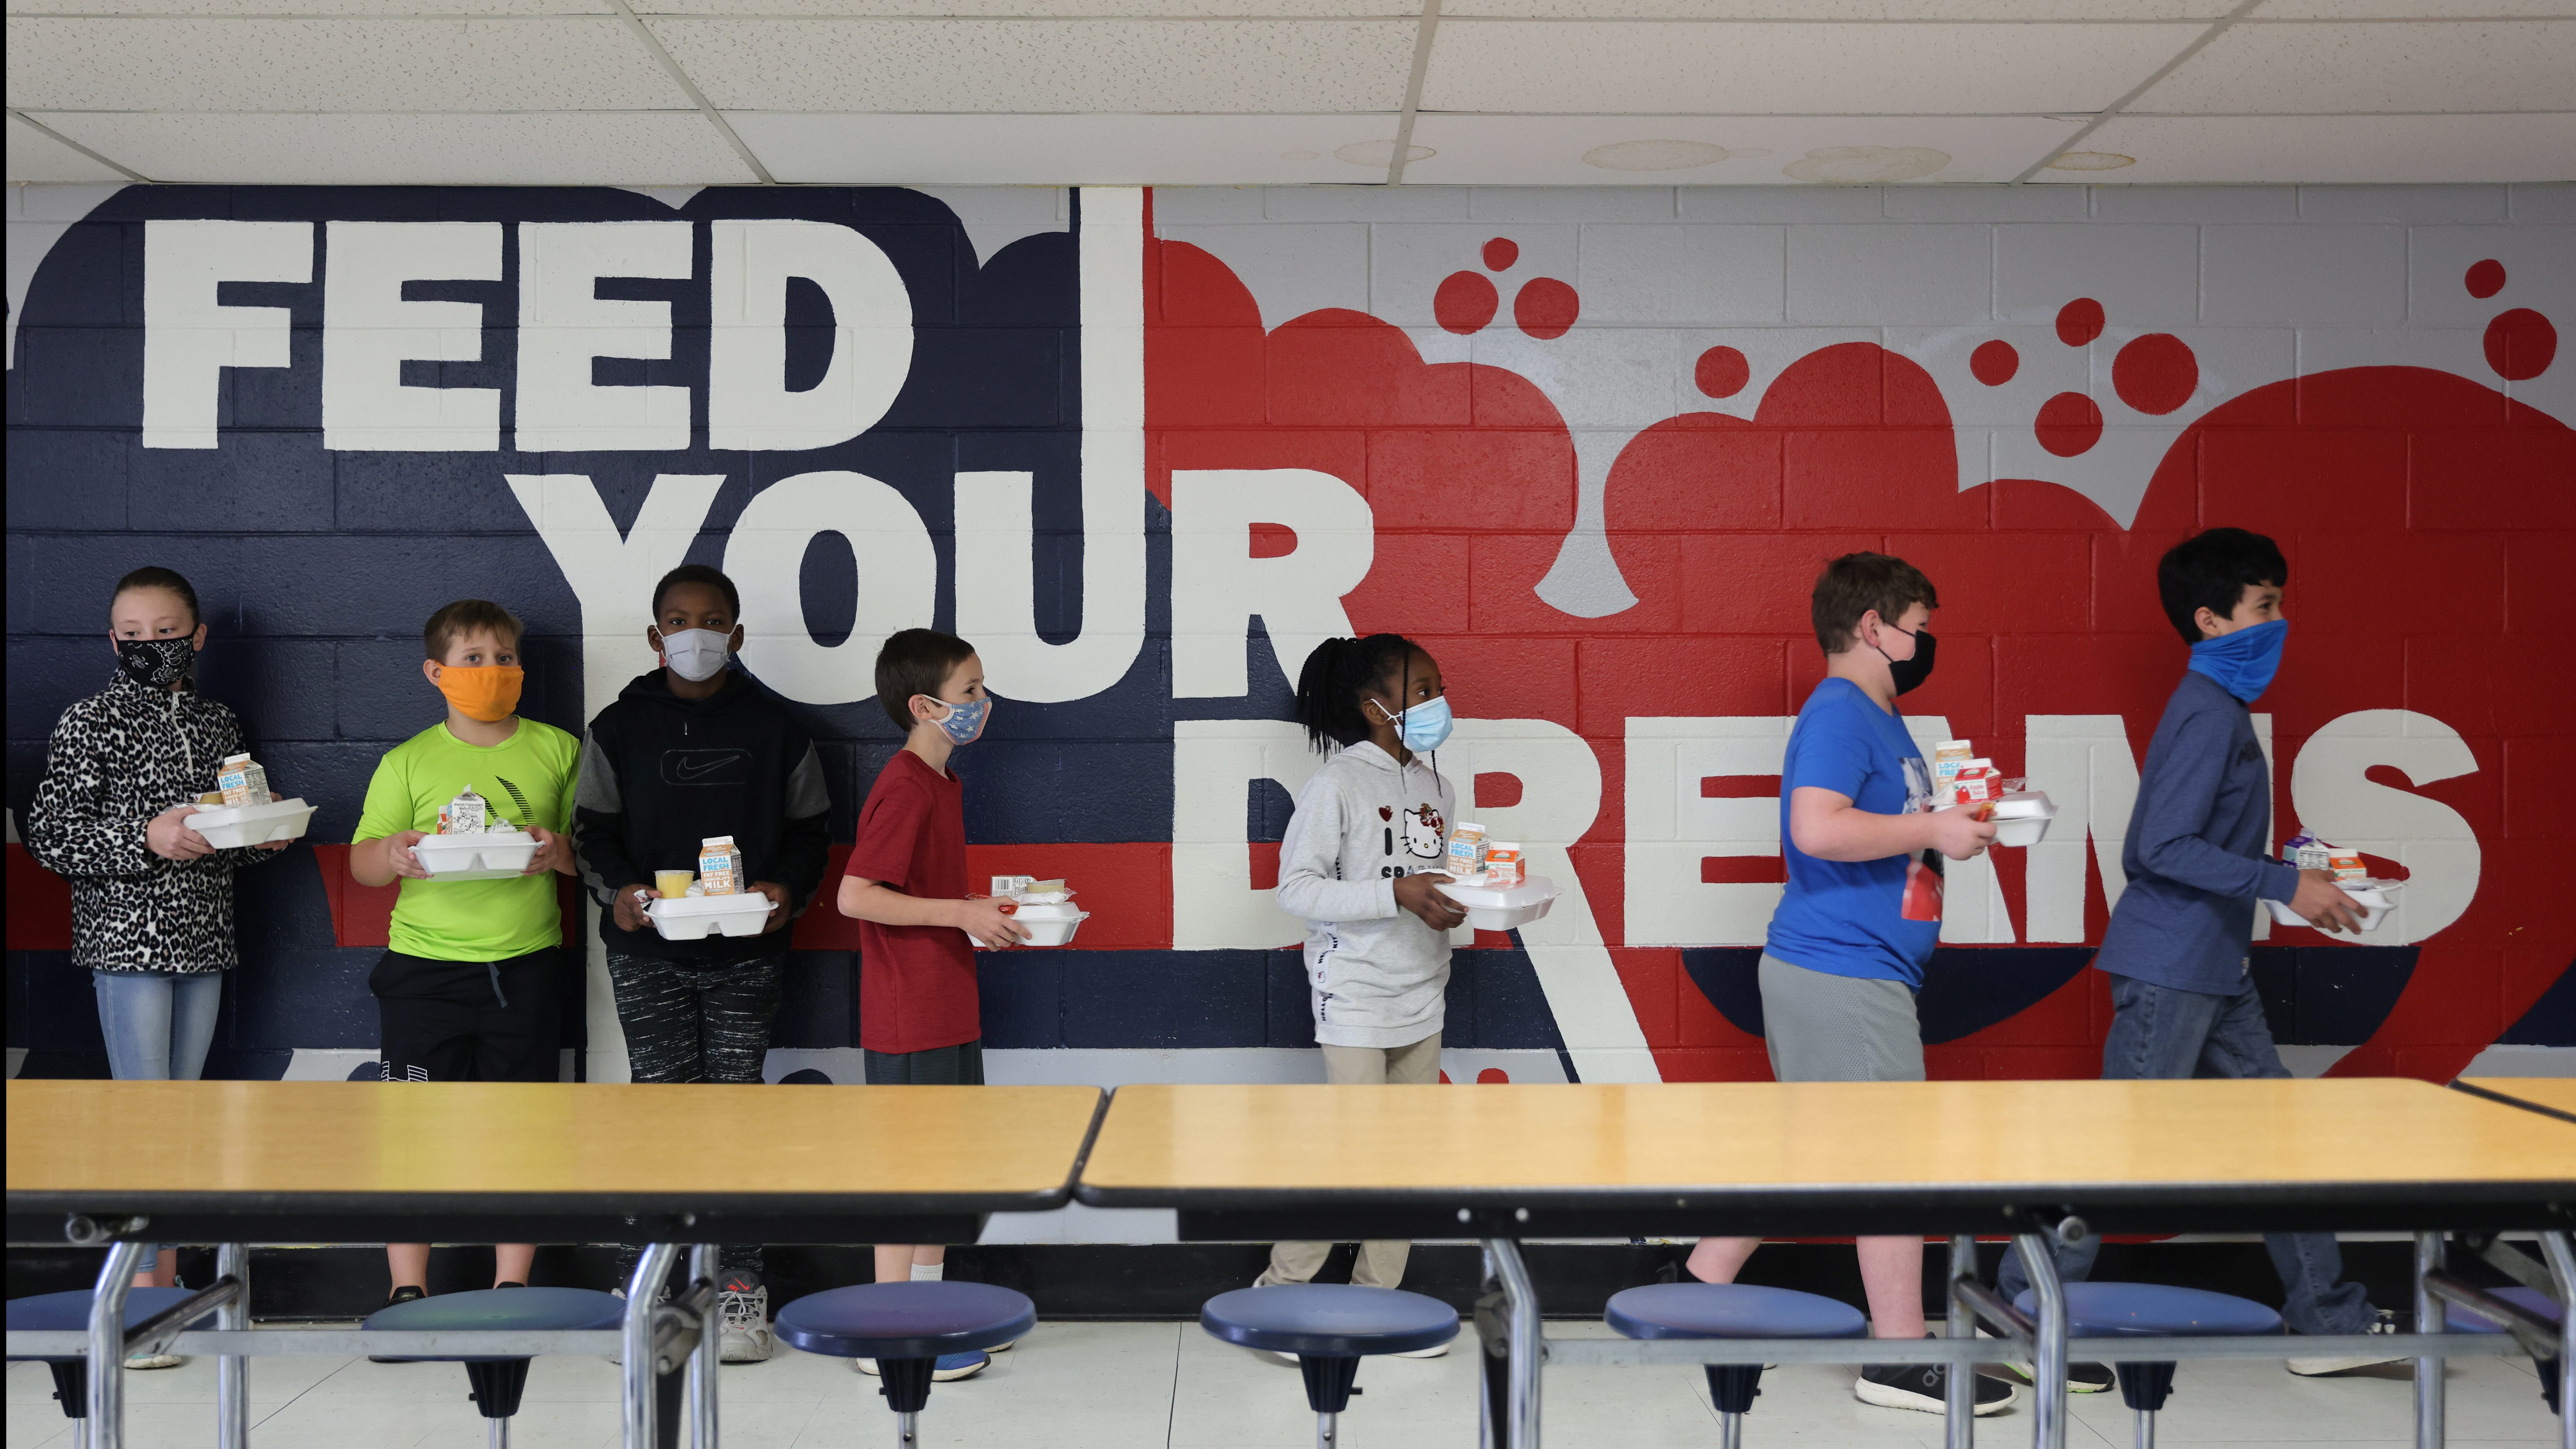 Older students carry their lunches to their classrooms to eat, leaving the lunchroom free for younger students to keep a social distance during in-person learning at Ackerman Elementary school in the small town of Ackerman, Mississippi, U.S.